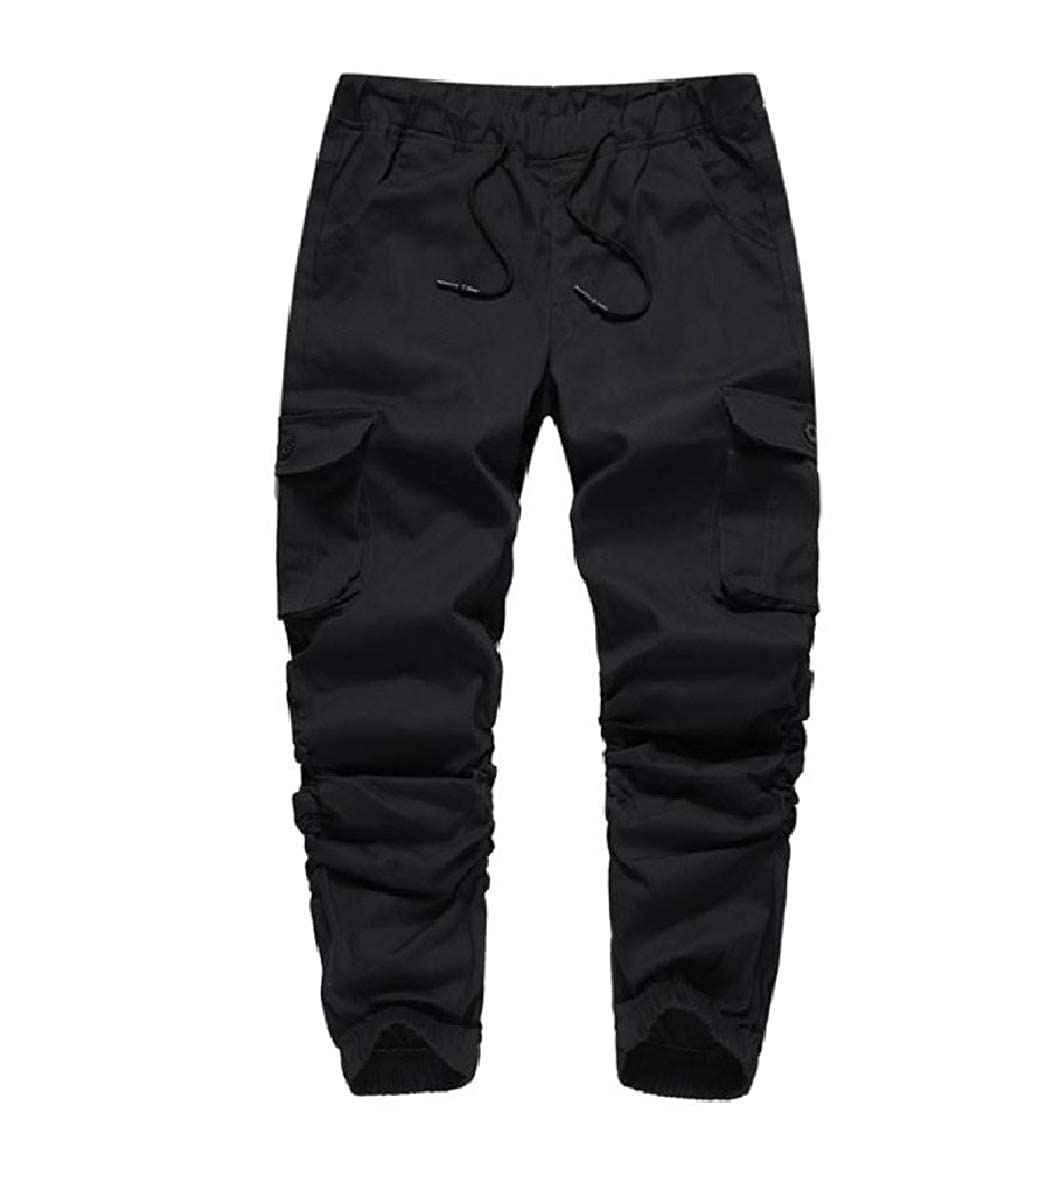 AngelSpace Mens Comfy Dungarees Relaxed-Fit Pockets Outdoor Wild Cargo Pants